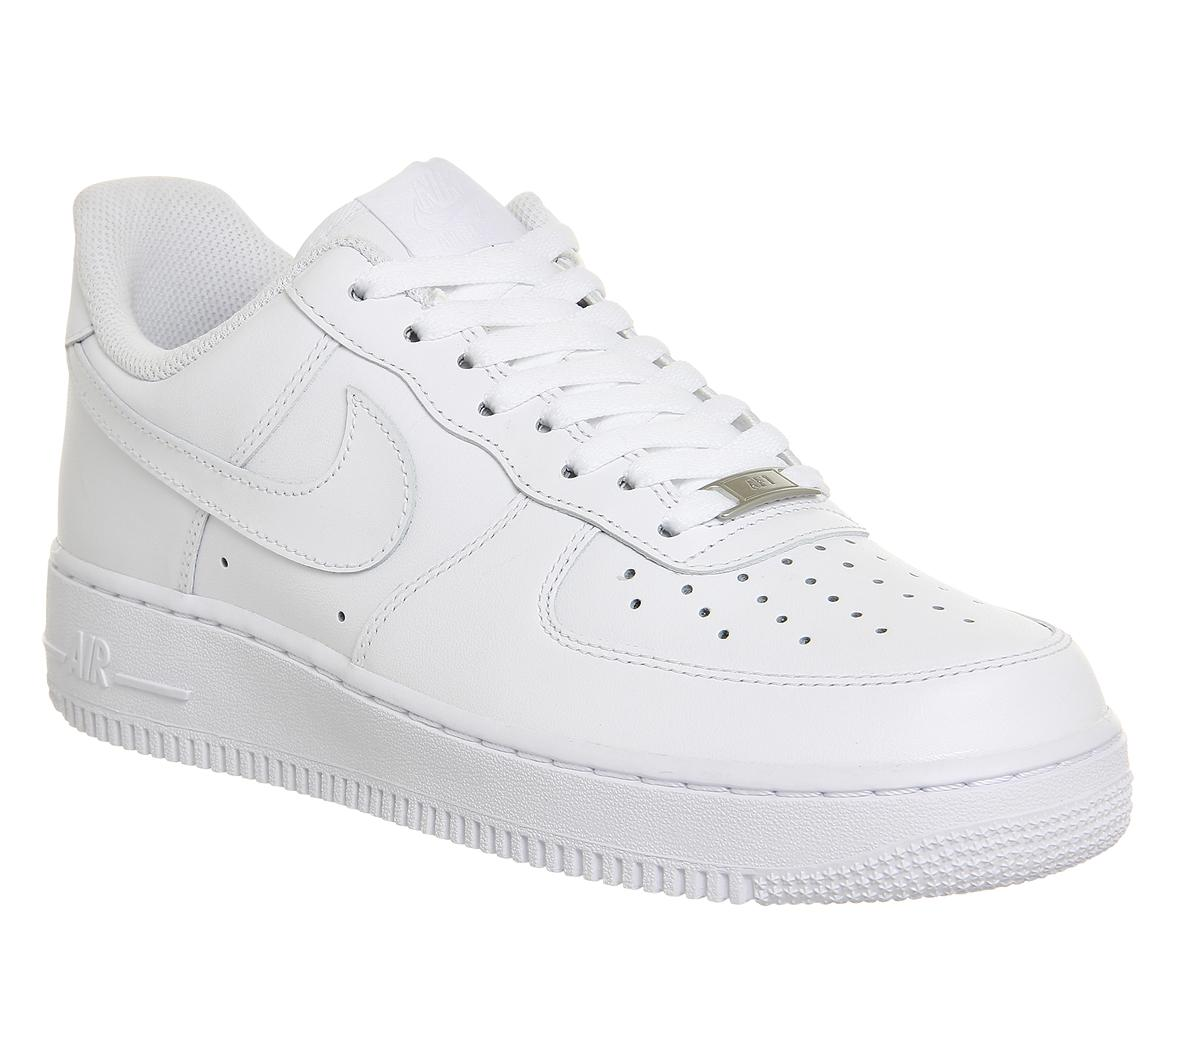 Nike Air Force Ones : Nike | Discounted Shoes & Trainers